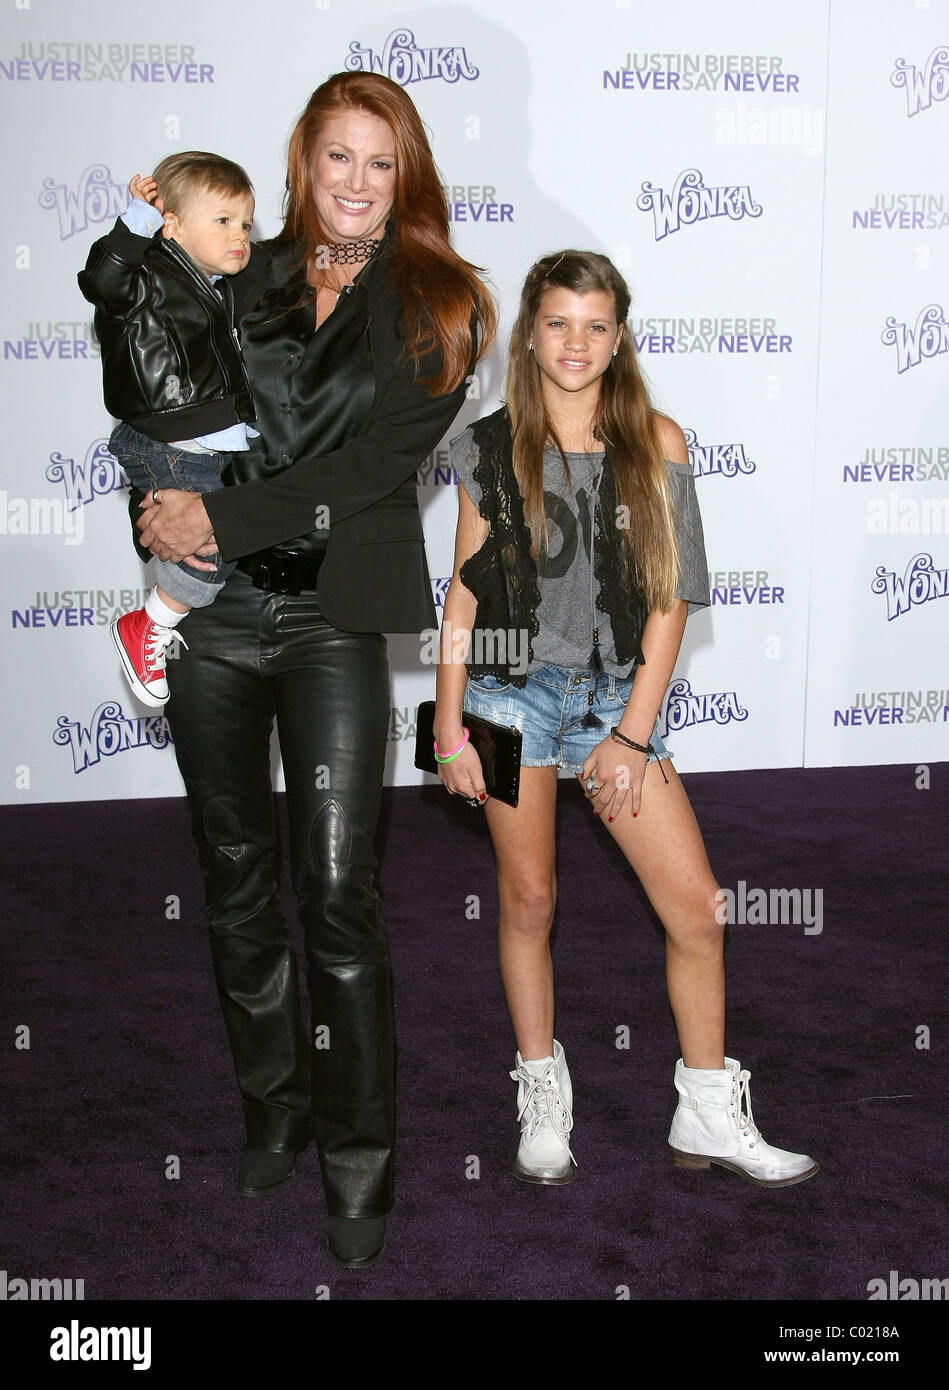 ANGIE EVERHART GUESTS JUSTIN BIEBER: NEVER SAY NEVER LOS ANGELES PREMIERE DOWNTOWN LOS ANGELES CALIFORNIA USA 08 - Stock Image